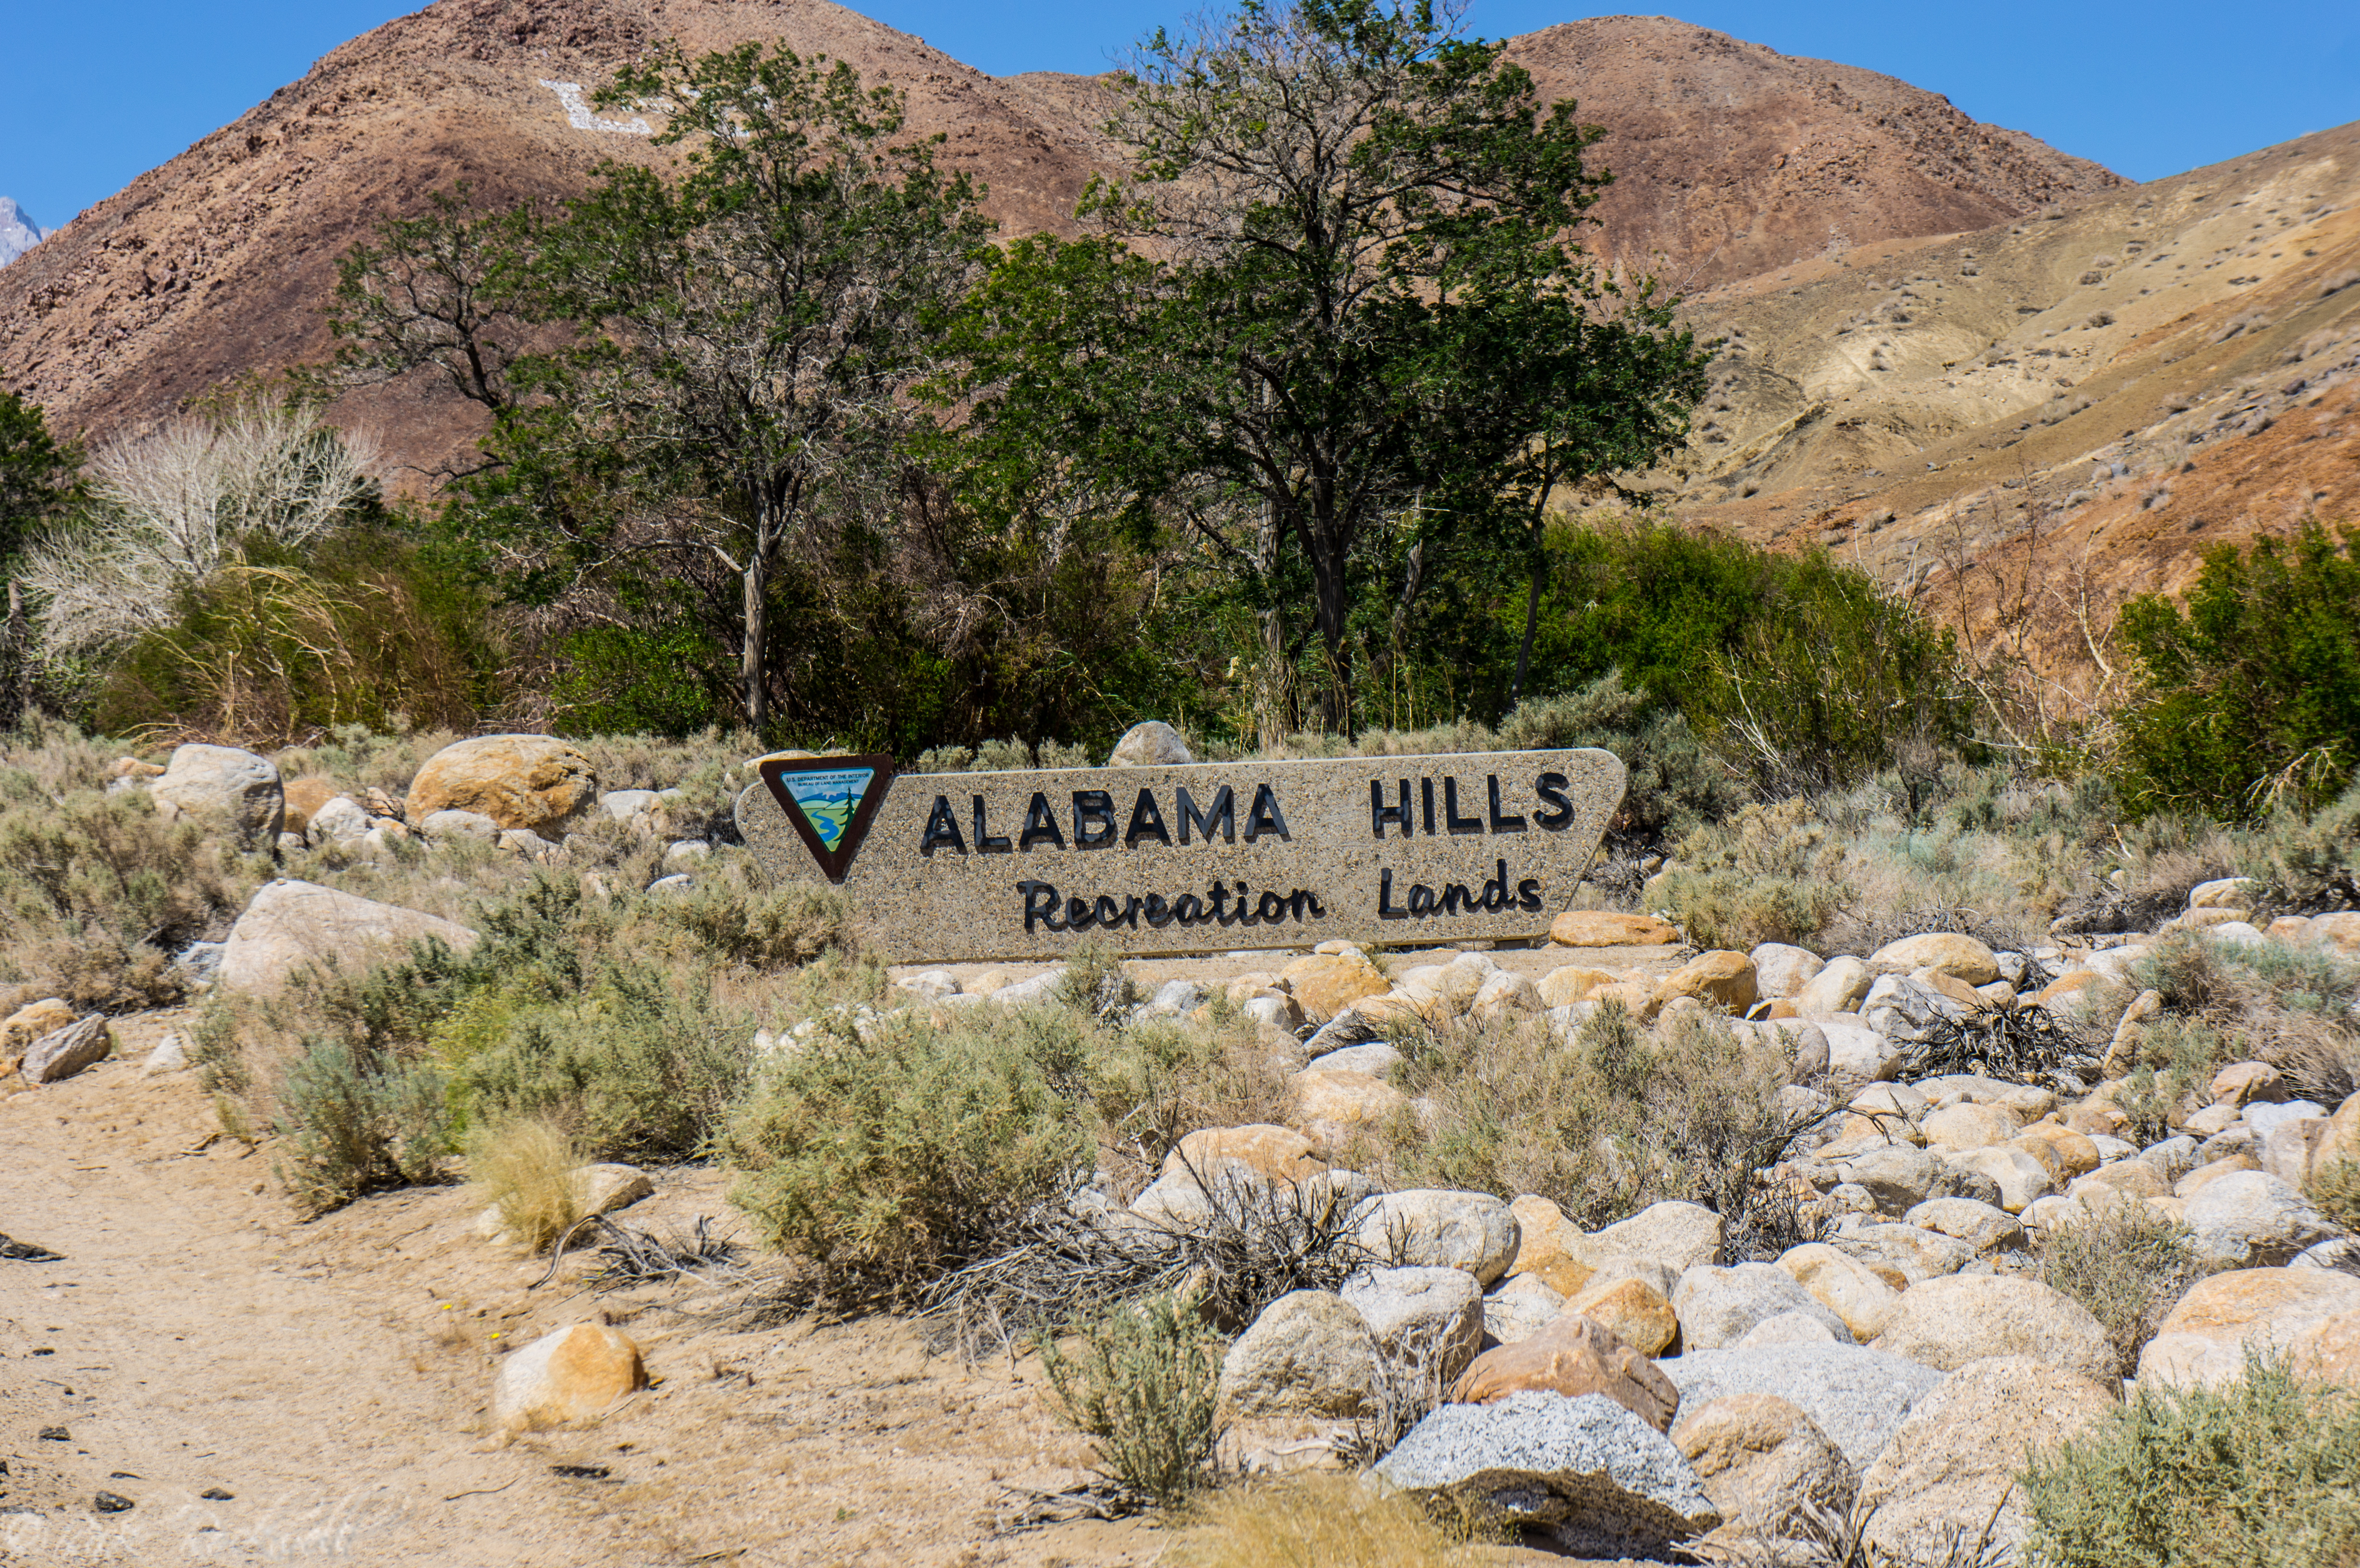 Photo of The Alabama Hills: Hollywood's iconic outdoor playground